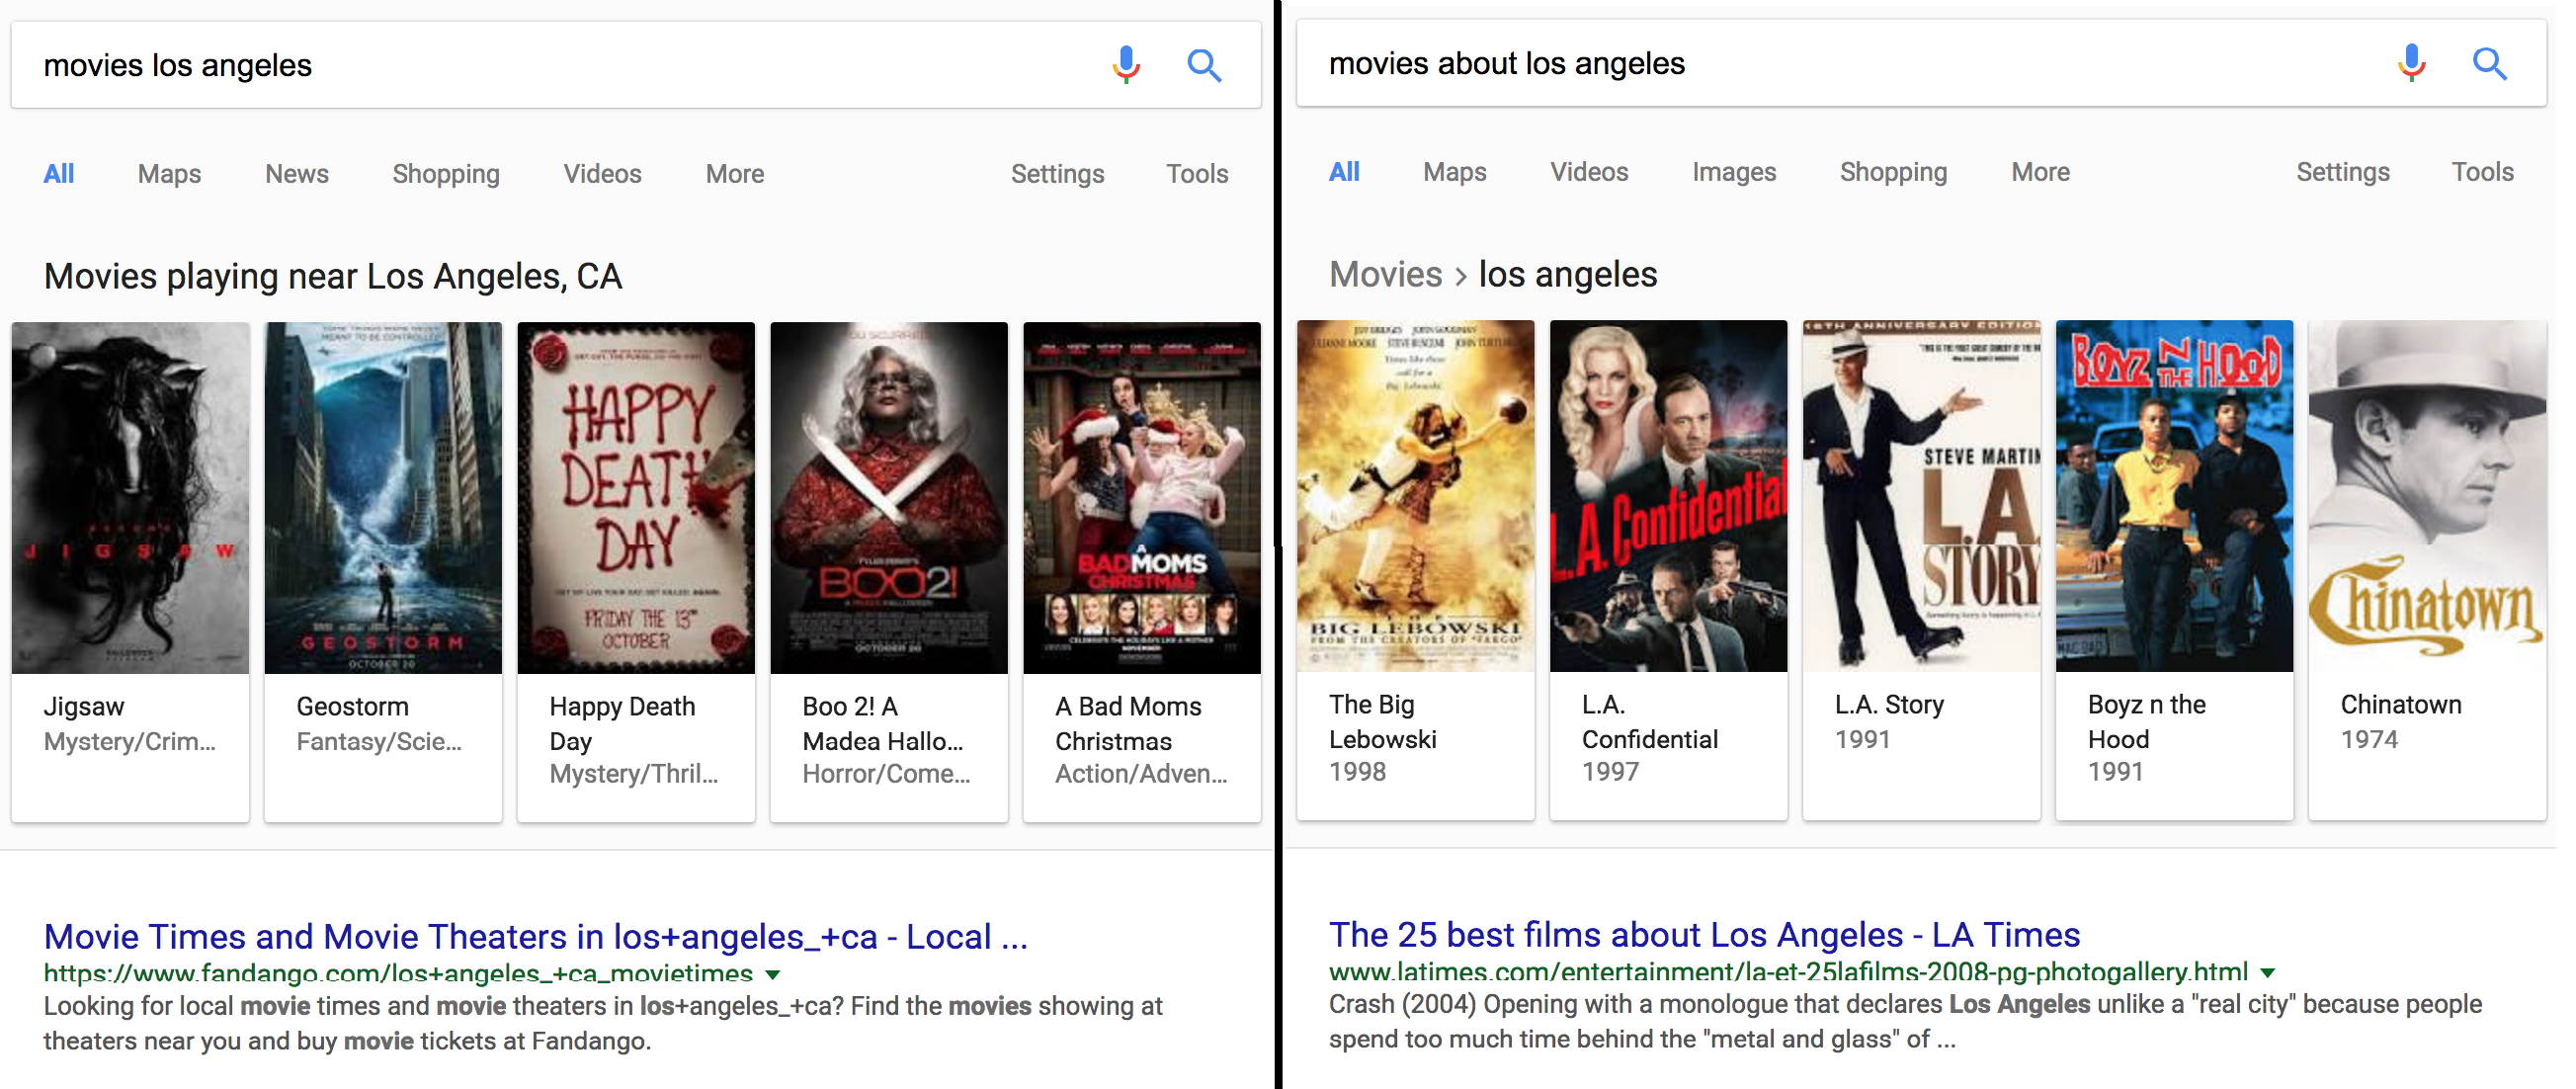 Movies near AND about LA side by side